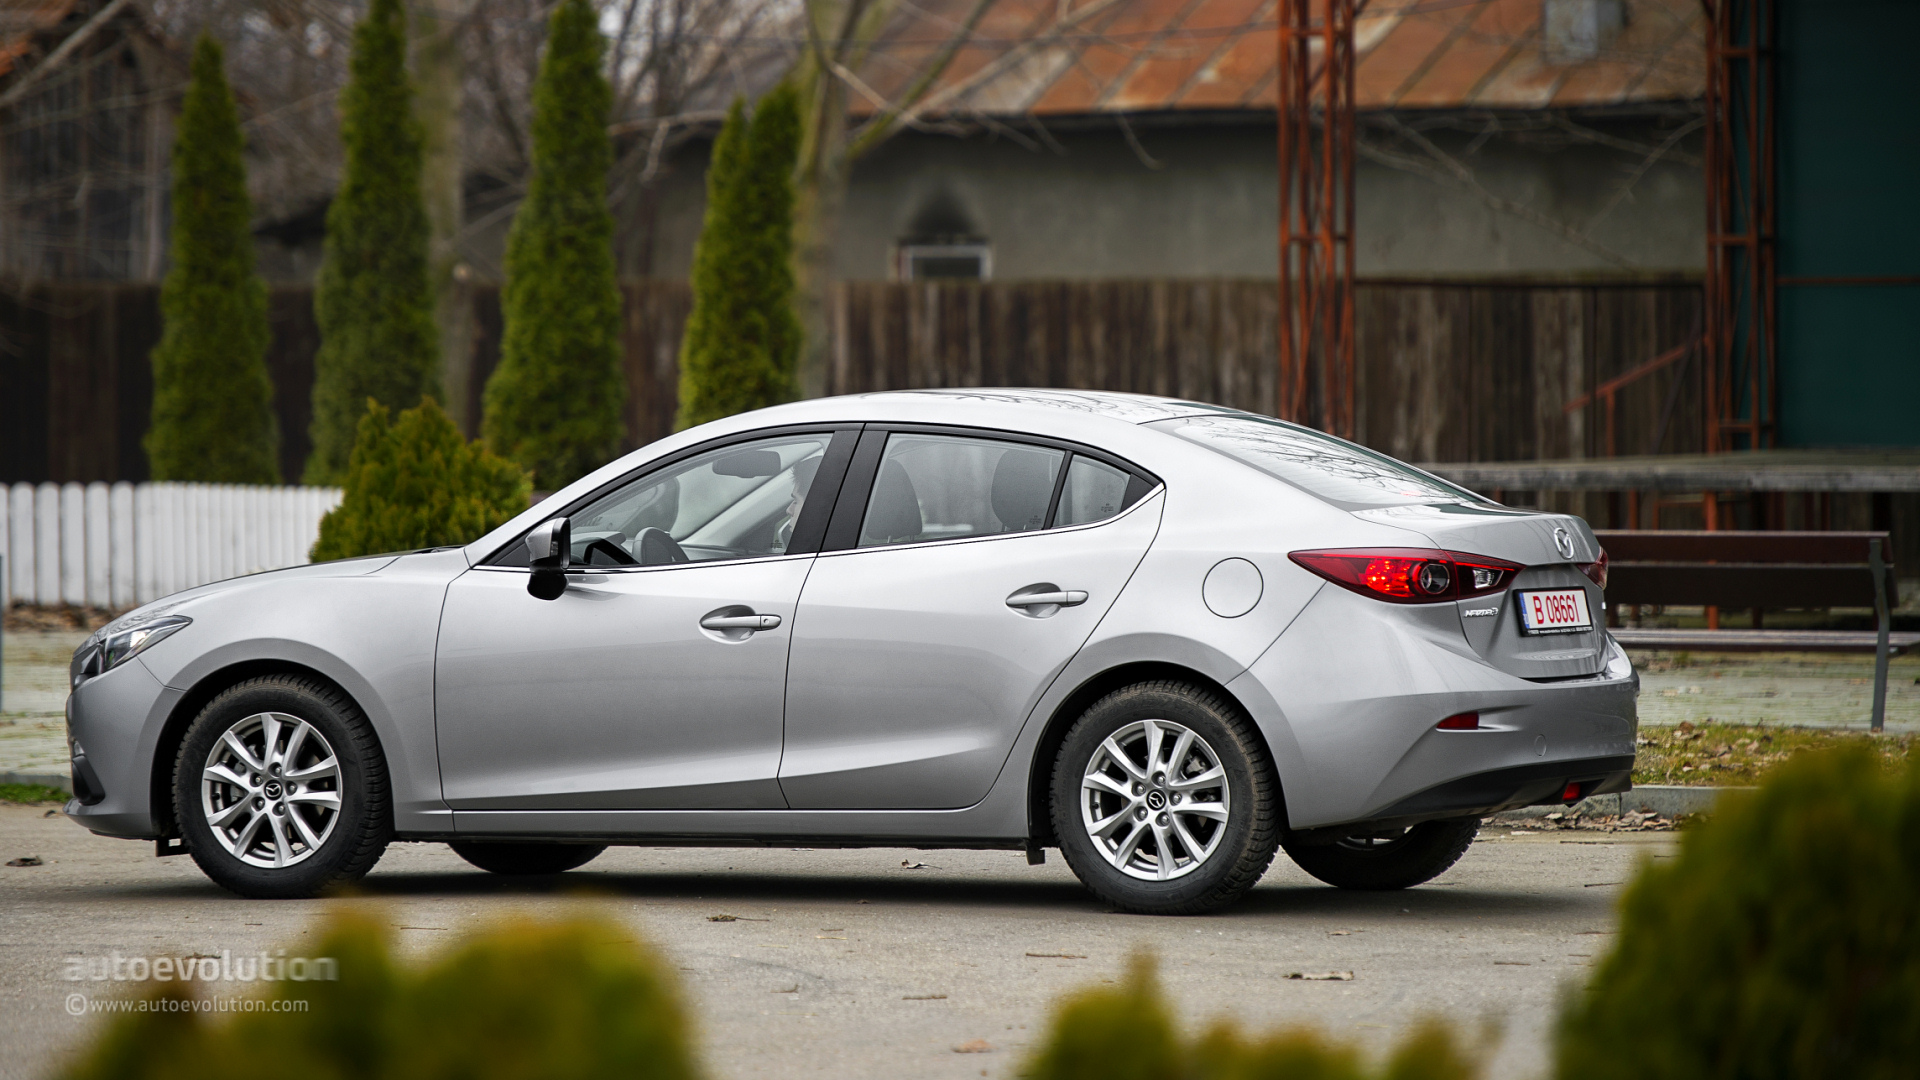 2014 mazda3 sedan review page 2 autoevolution. Black Bedroom Furniture Sets. Home Design Ideas